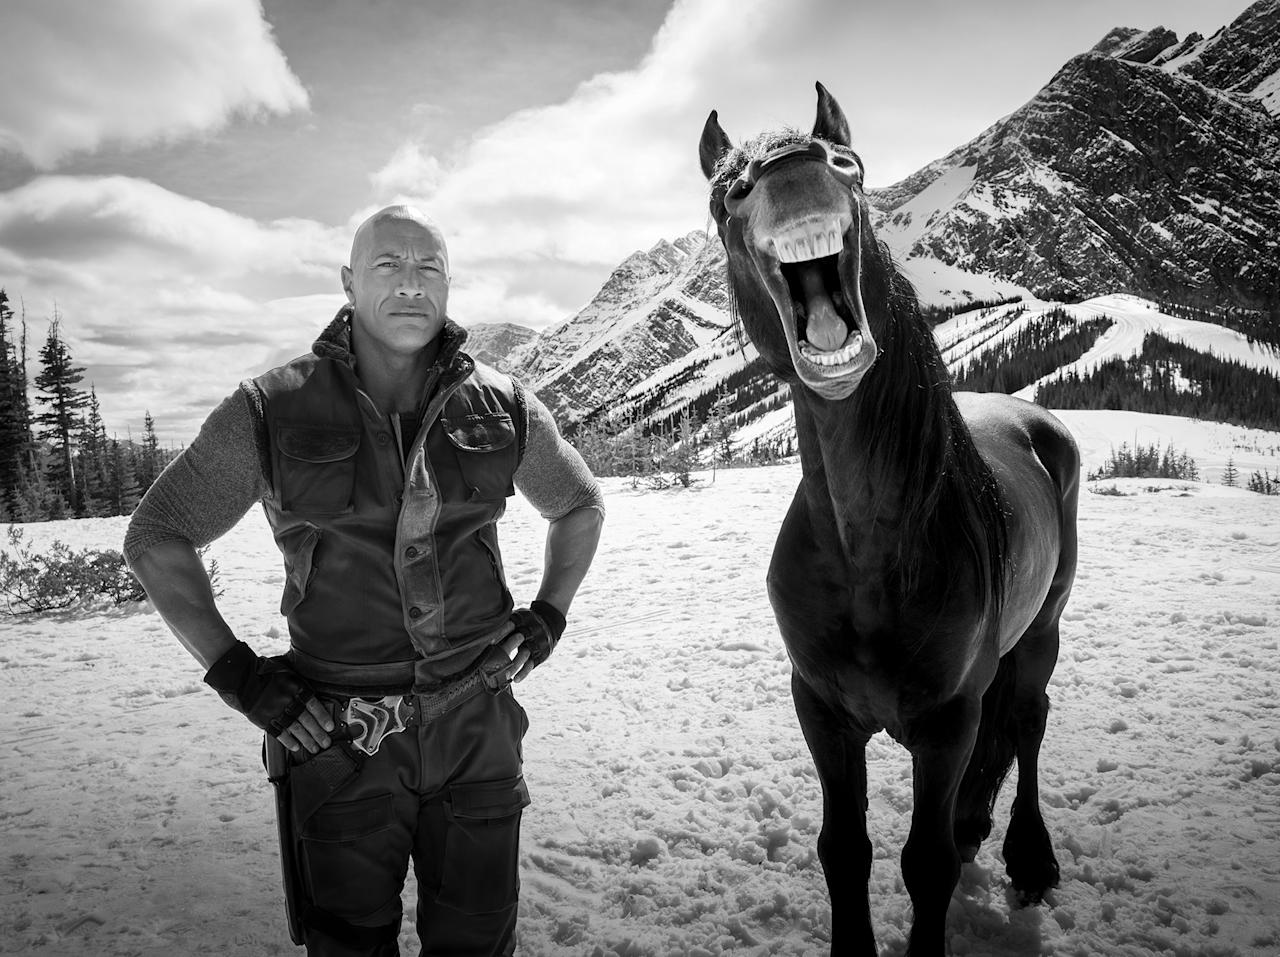 """We had two gorgeous black Friesians on set. These horses are stunning. Giant, muscular, majestic. Every angle you look at them, they're stunning, and they were really good actors,"" Garcia said. ""D.J. was standing with one, and the idea was, this was going to be a really badass shot. Like I'm going to have D.J. give me straight blue steel, the Friesian at the time was giving a real nice profile look. His face was looking to the side. And you have the mountains and the clouds…and then the shot turns into this."""